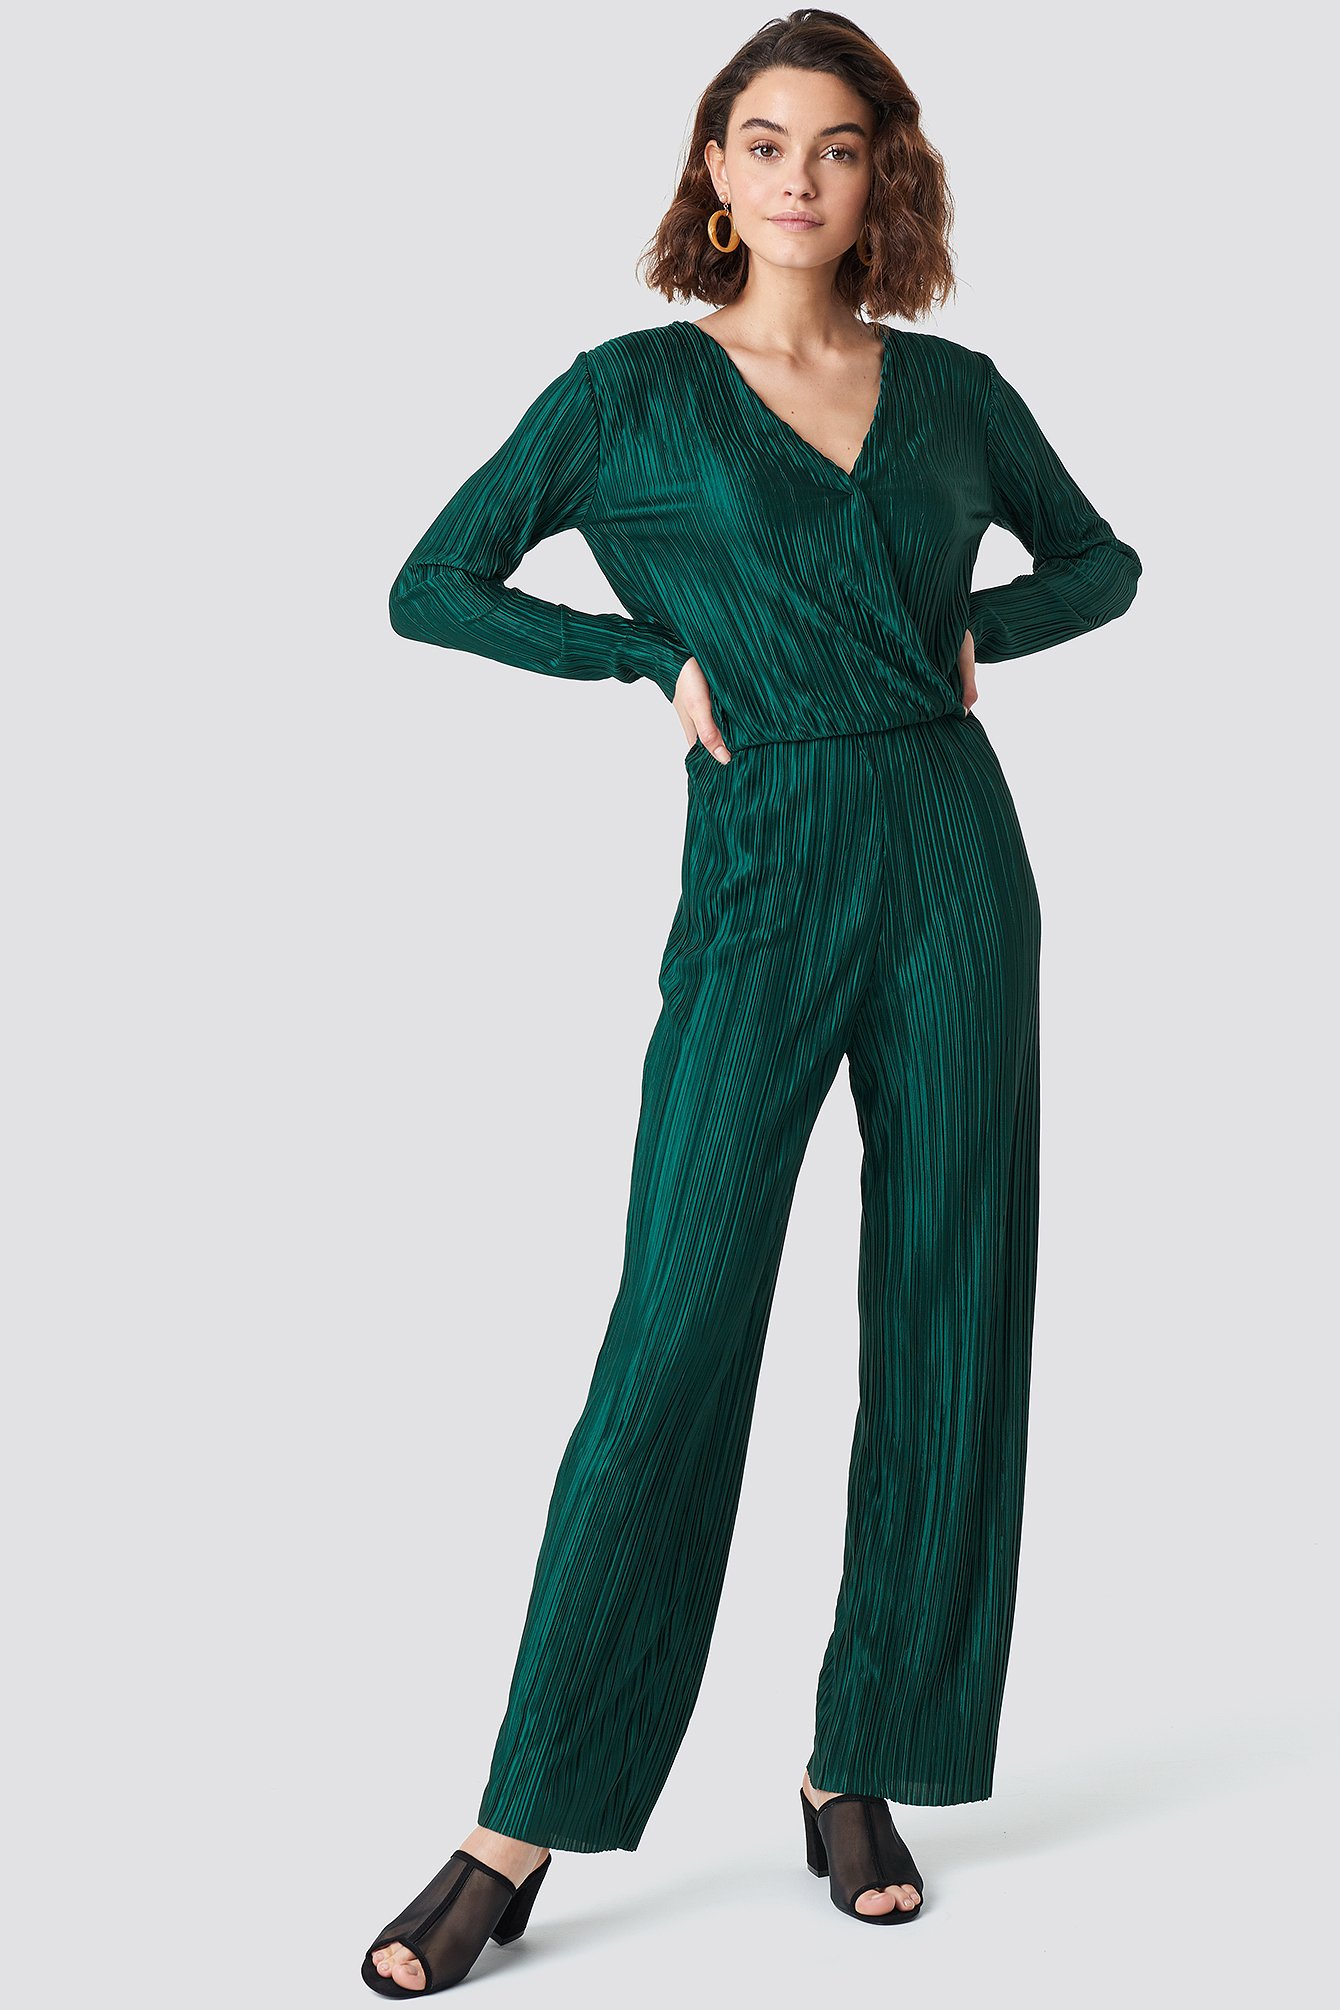 PLEATED JUMPSUIT - GREEN